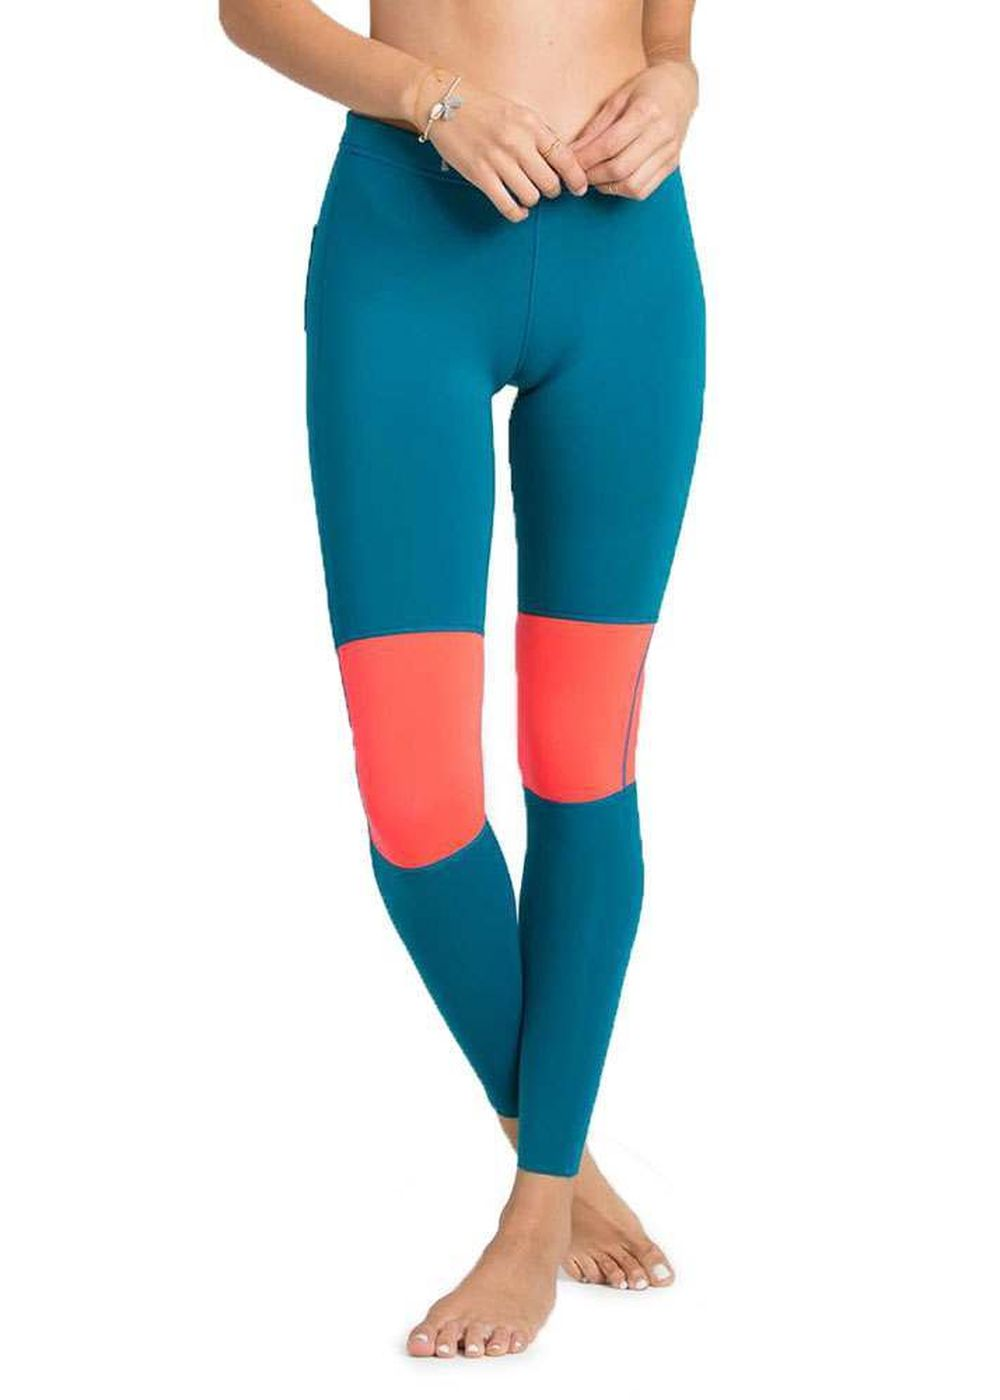 Billabong Skinny Sea Legs Wetsuit Leggings Maldive Picture